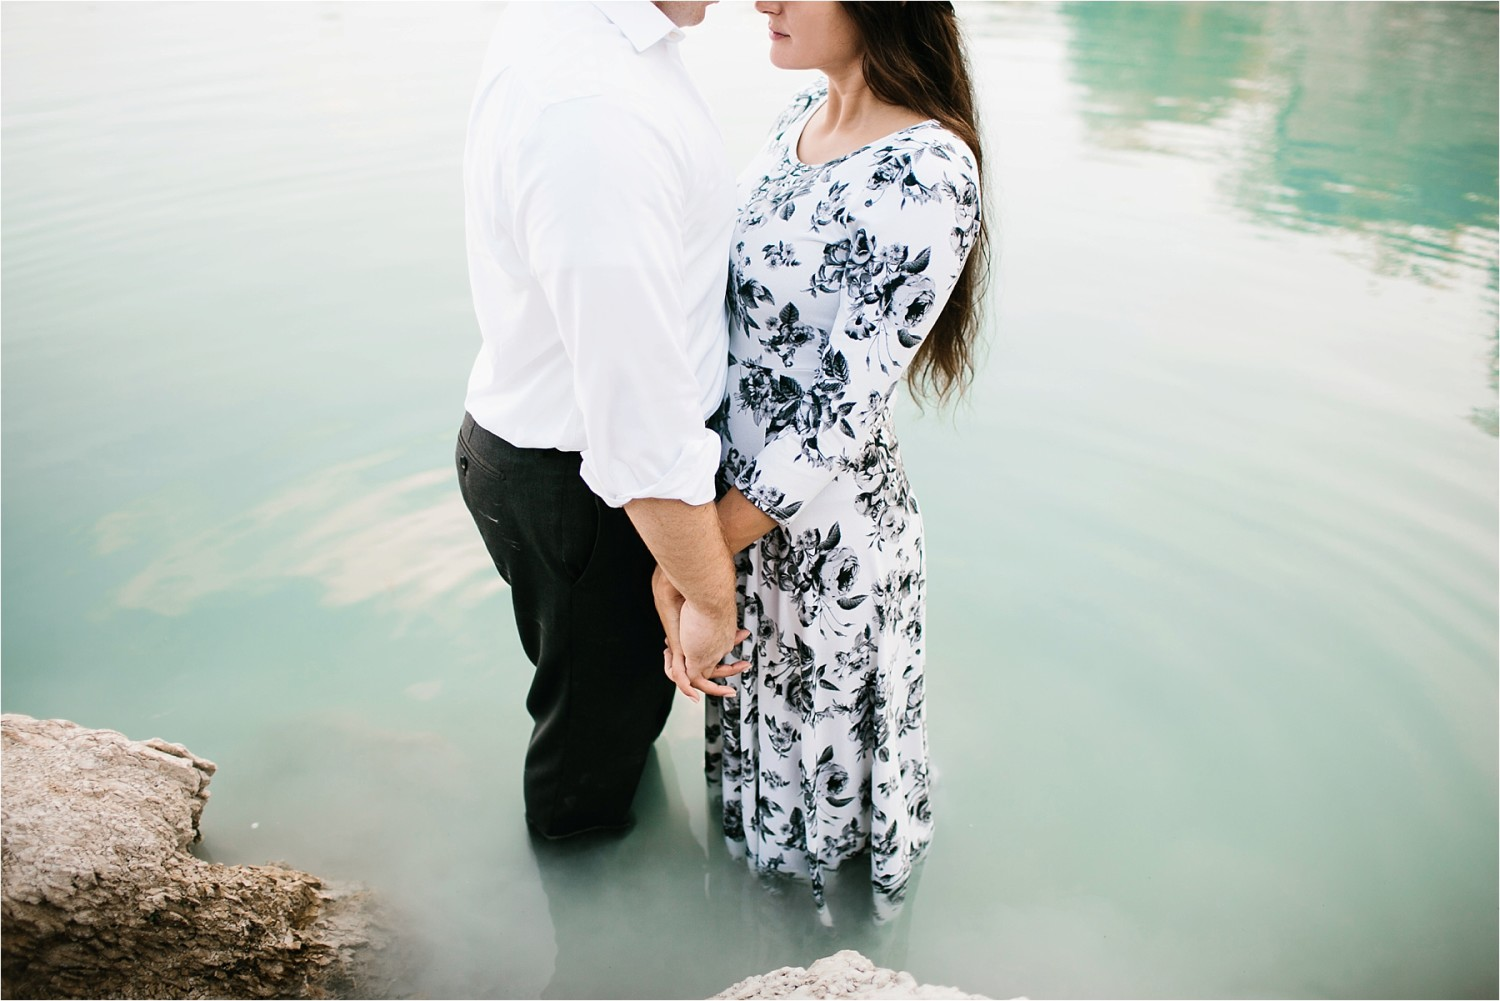 an-intimate-sunrise-session-by-north-texas-wedding-photographer-rachel-meagan-photography-_-51